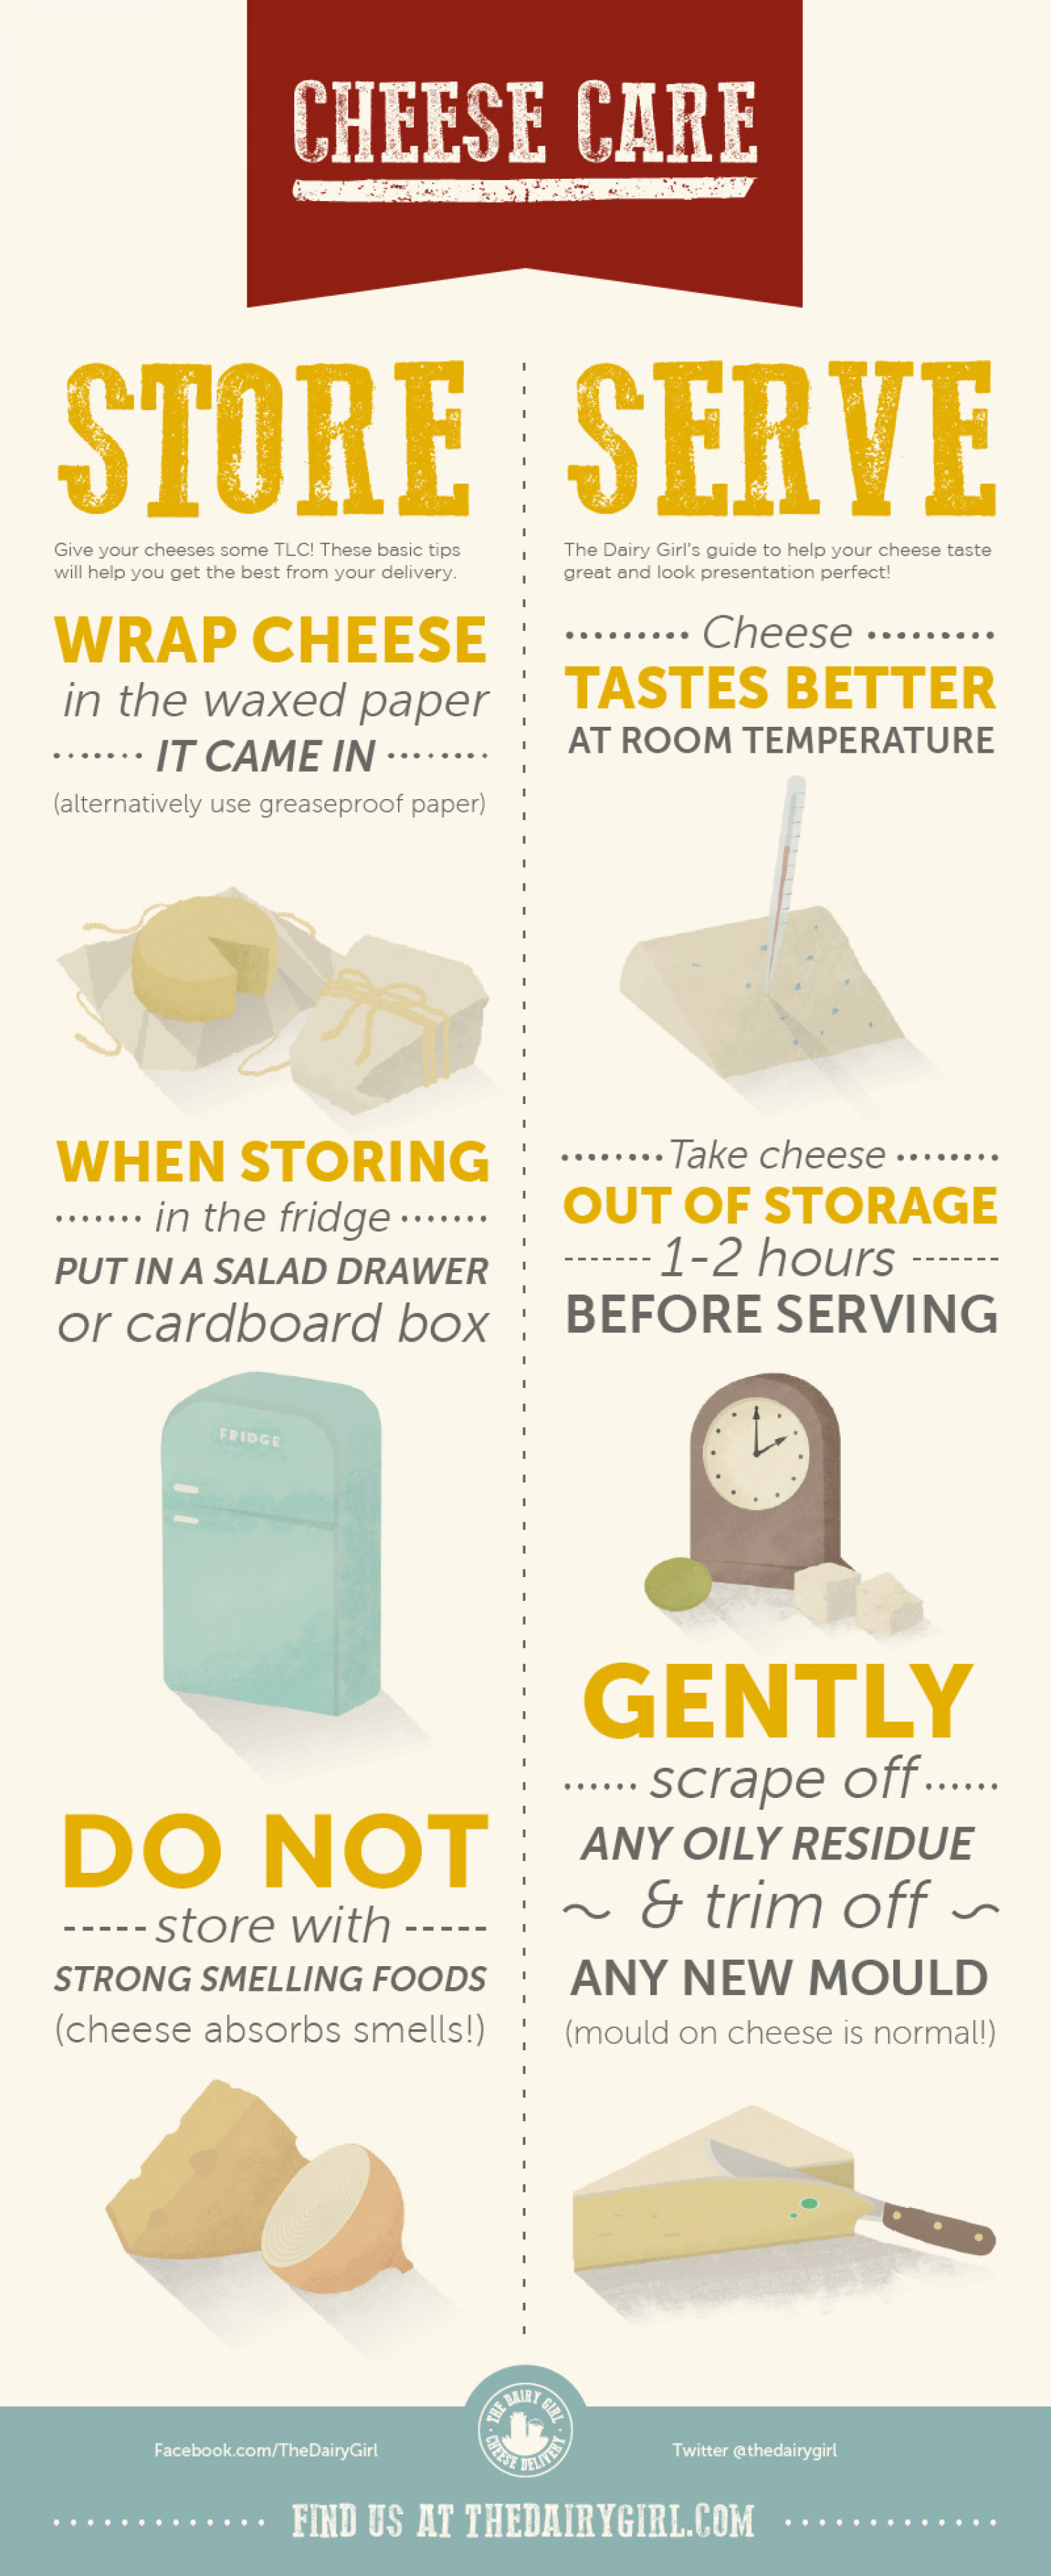 The Dairy Girl: Cheese Care Infographic